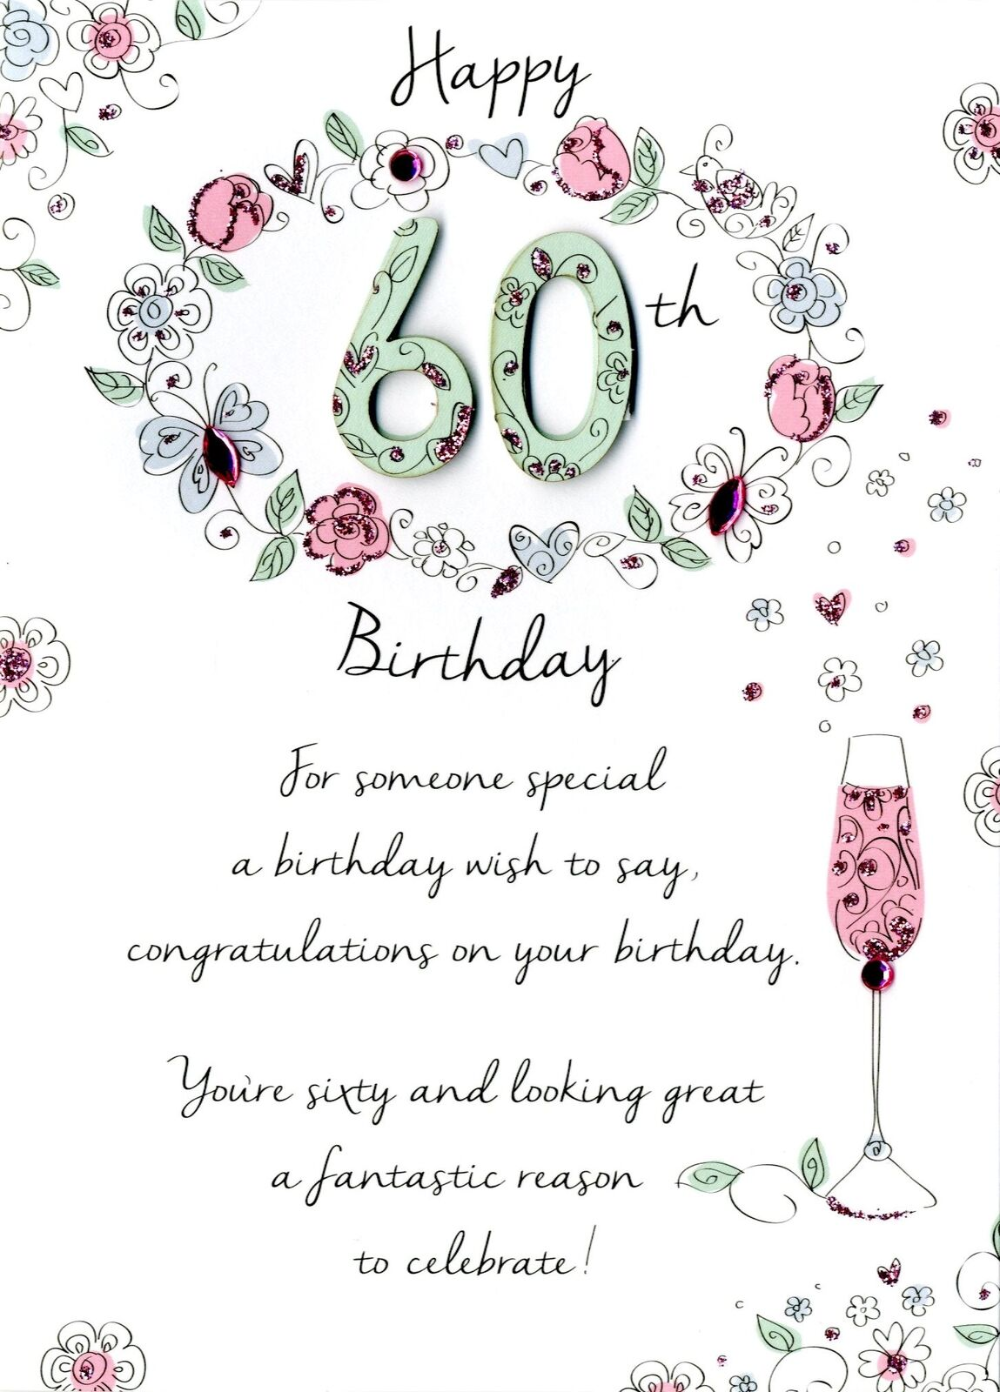 Female 60th Birthday Greeting Card Second Nature Just To Say Cards 5034527262899 Ebay 60th Birthday Cards 60th Birthday Greetings Happy 60th Birthday Wishes